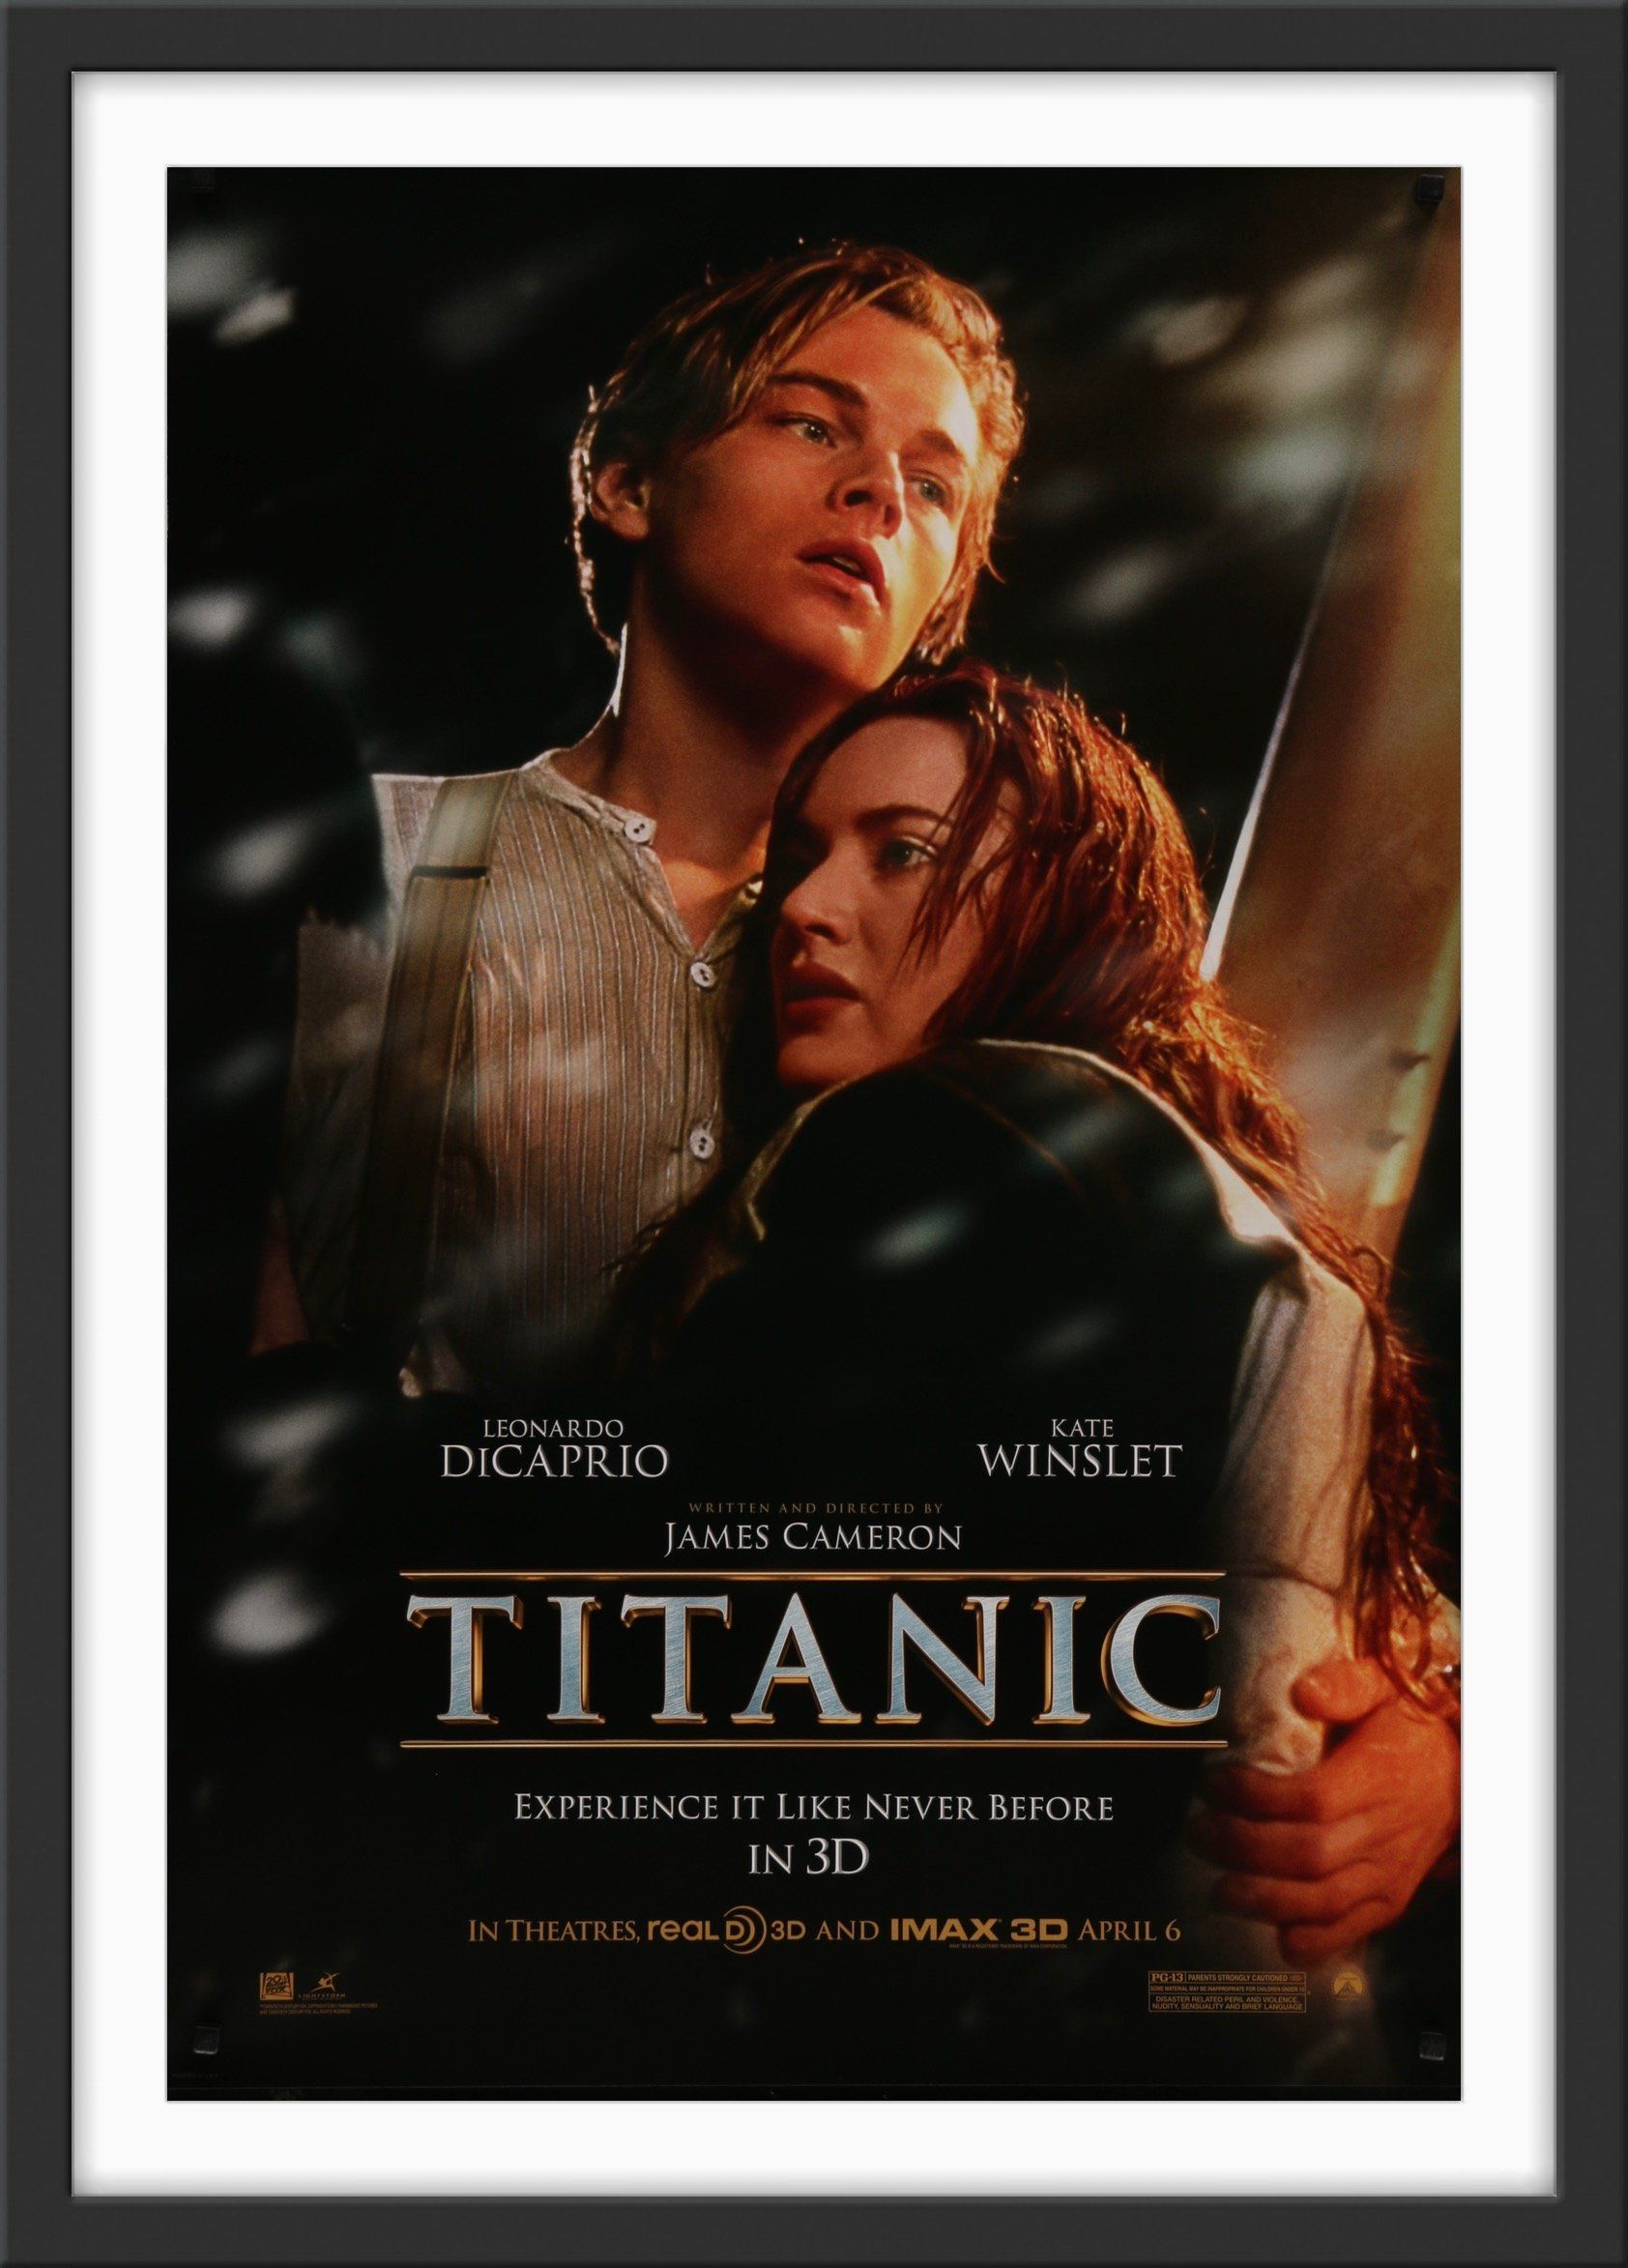 """Condition: Very Good. Never folded! Free shipping within the UK. A low flat rate for the rest of the world. Size: 69 cm x 102 cm (27 in x 40 in) A guaranteed original IMAX one sheet poster from the 2012 release of James Cameron's 1997 epic """"Titanic"""", starring Leanardo DiCaprio and Kate Winslet. Based on the ill fated maiden journey of RMS Titanic, the British passenger lined that, having set sail from Southampton, sank in the North Atlantic on 15th April 1912. Nominated for fourteen Oscars and w"""